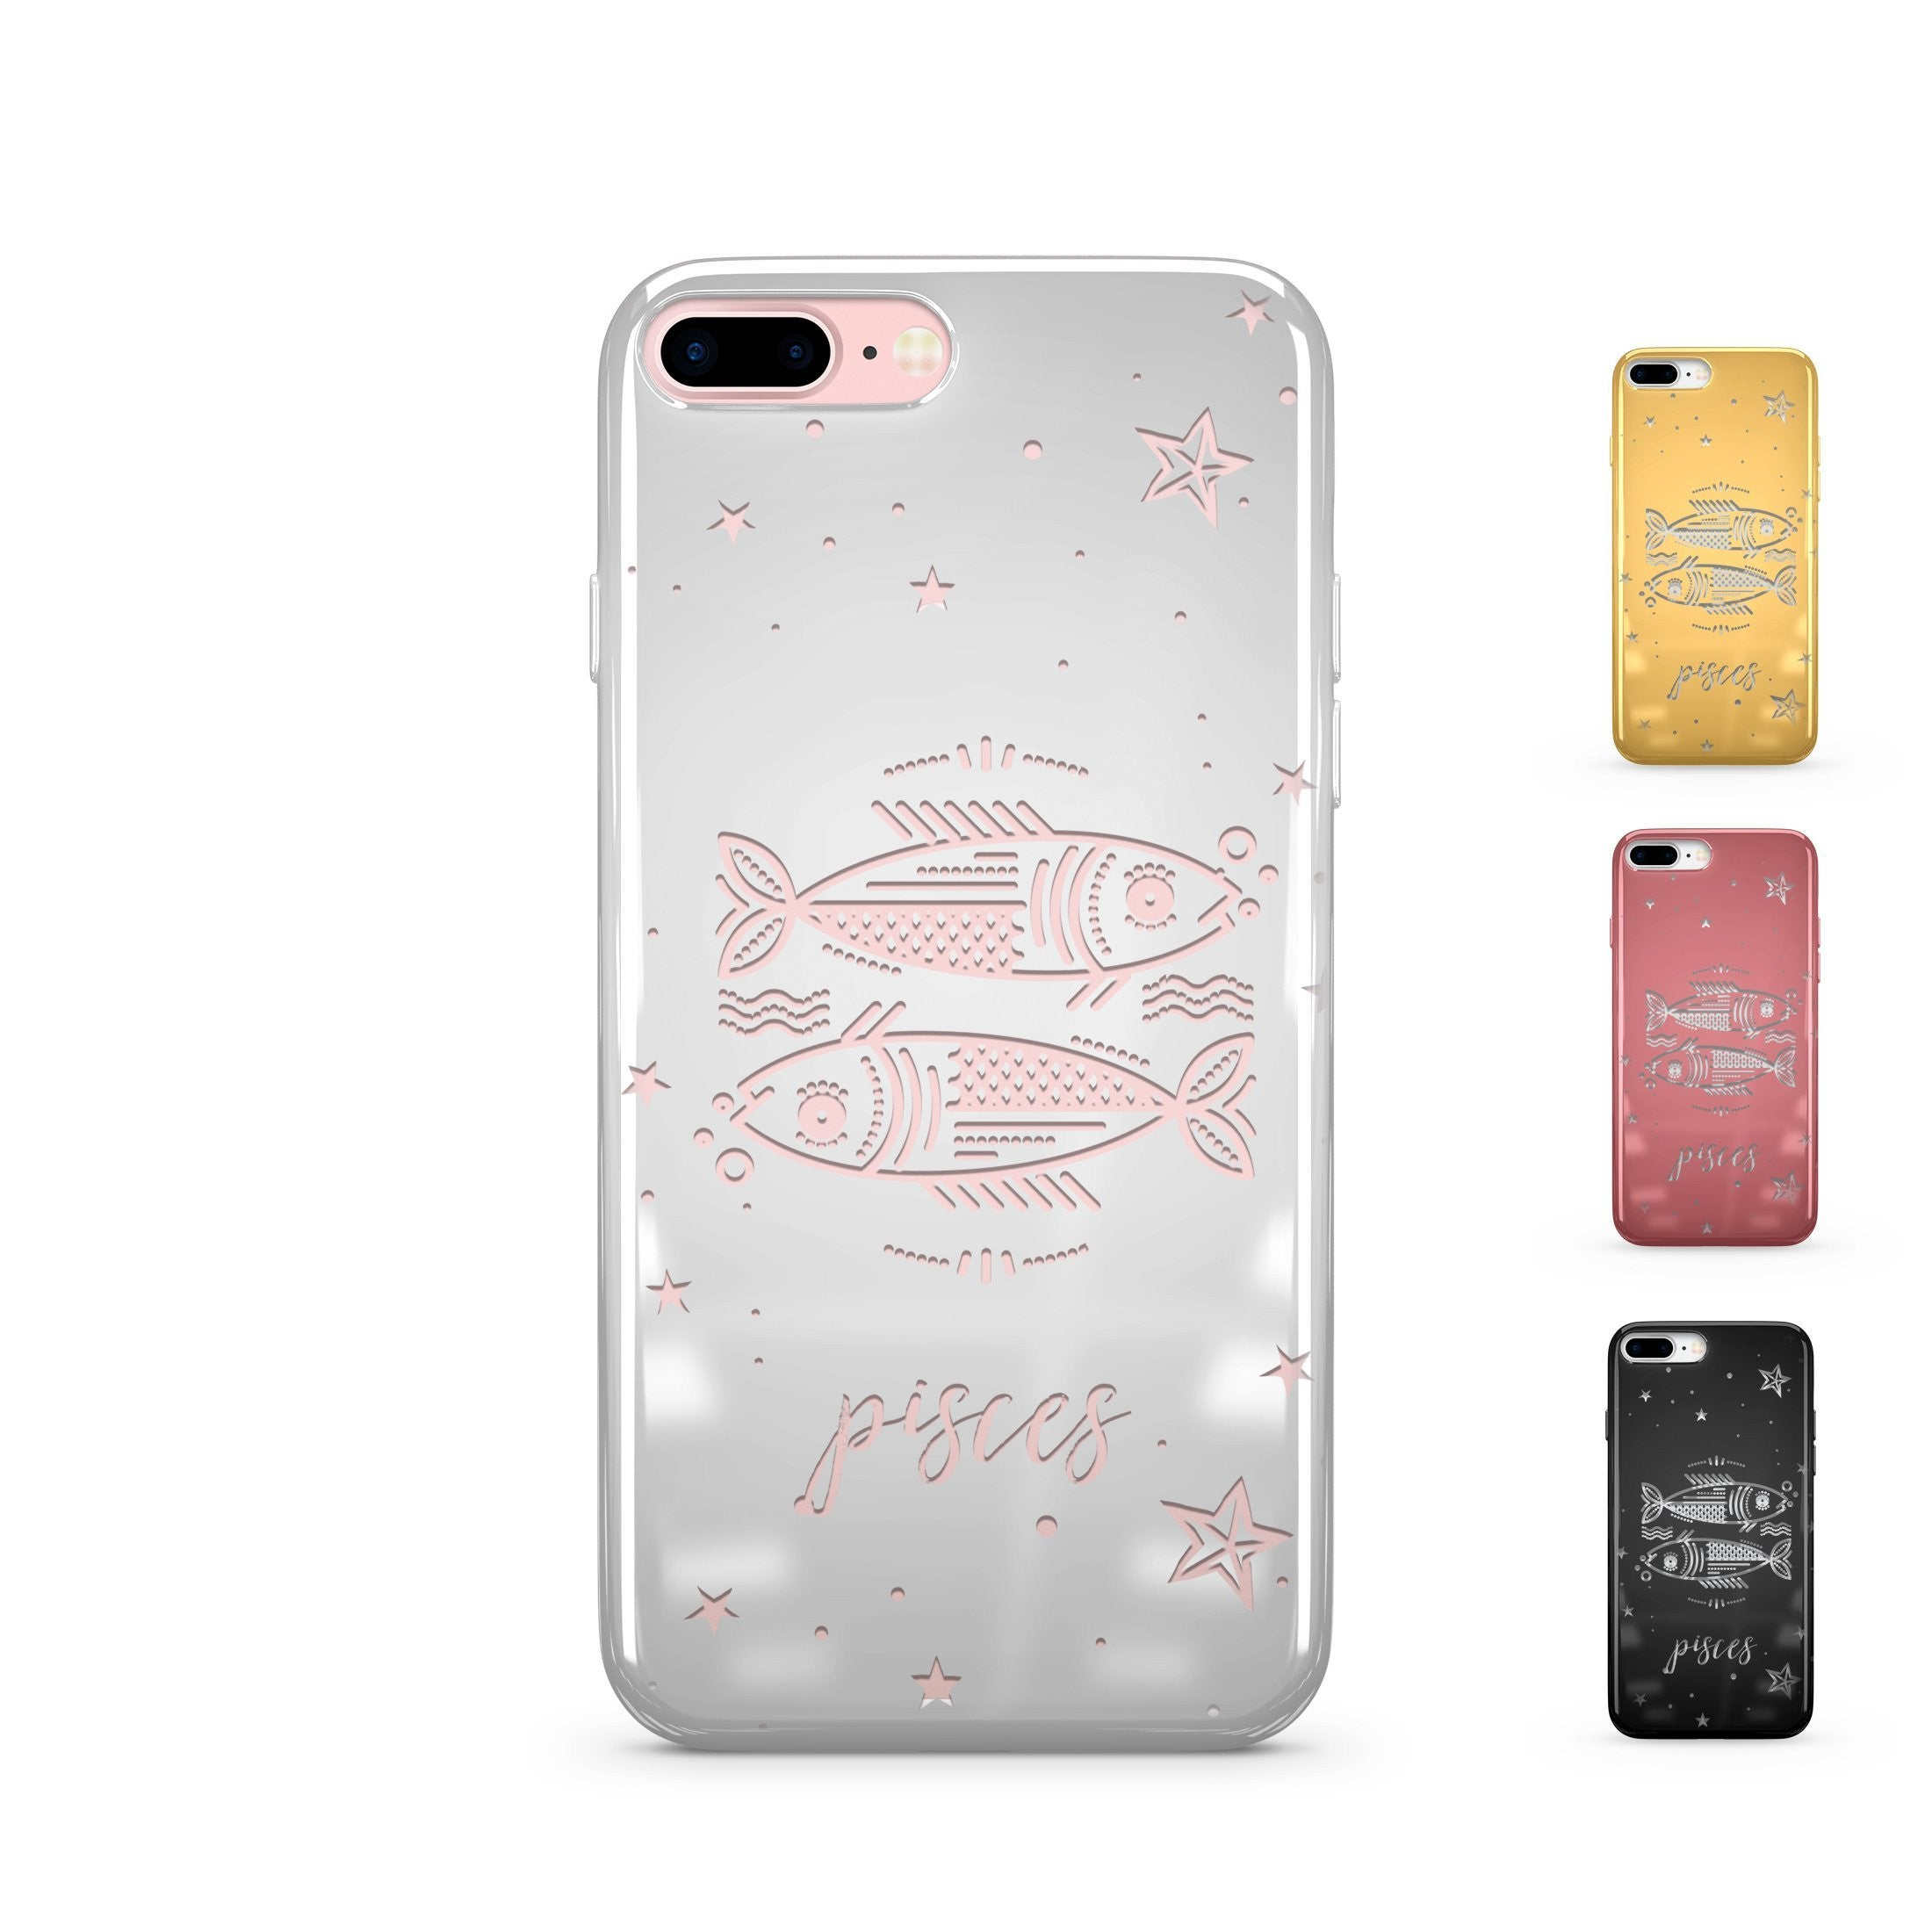 Chrome Shiny TPU iPhone Case Cover - Pisces